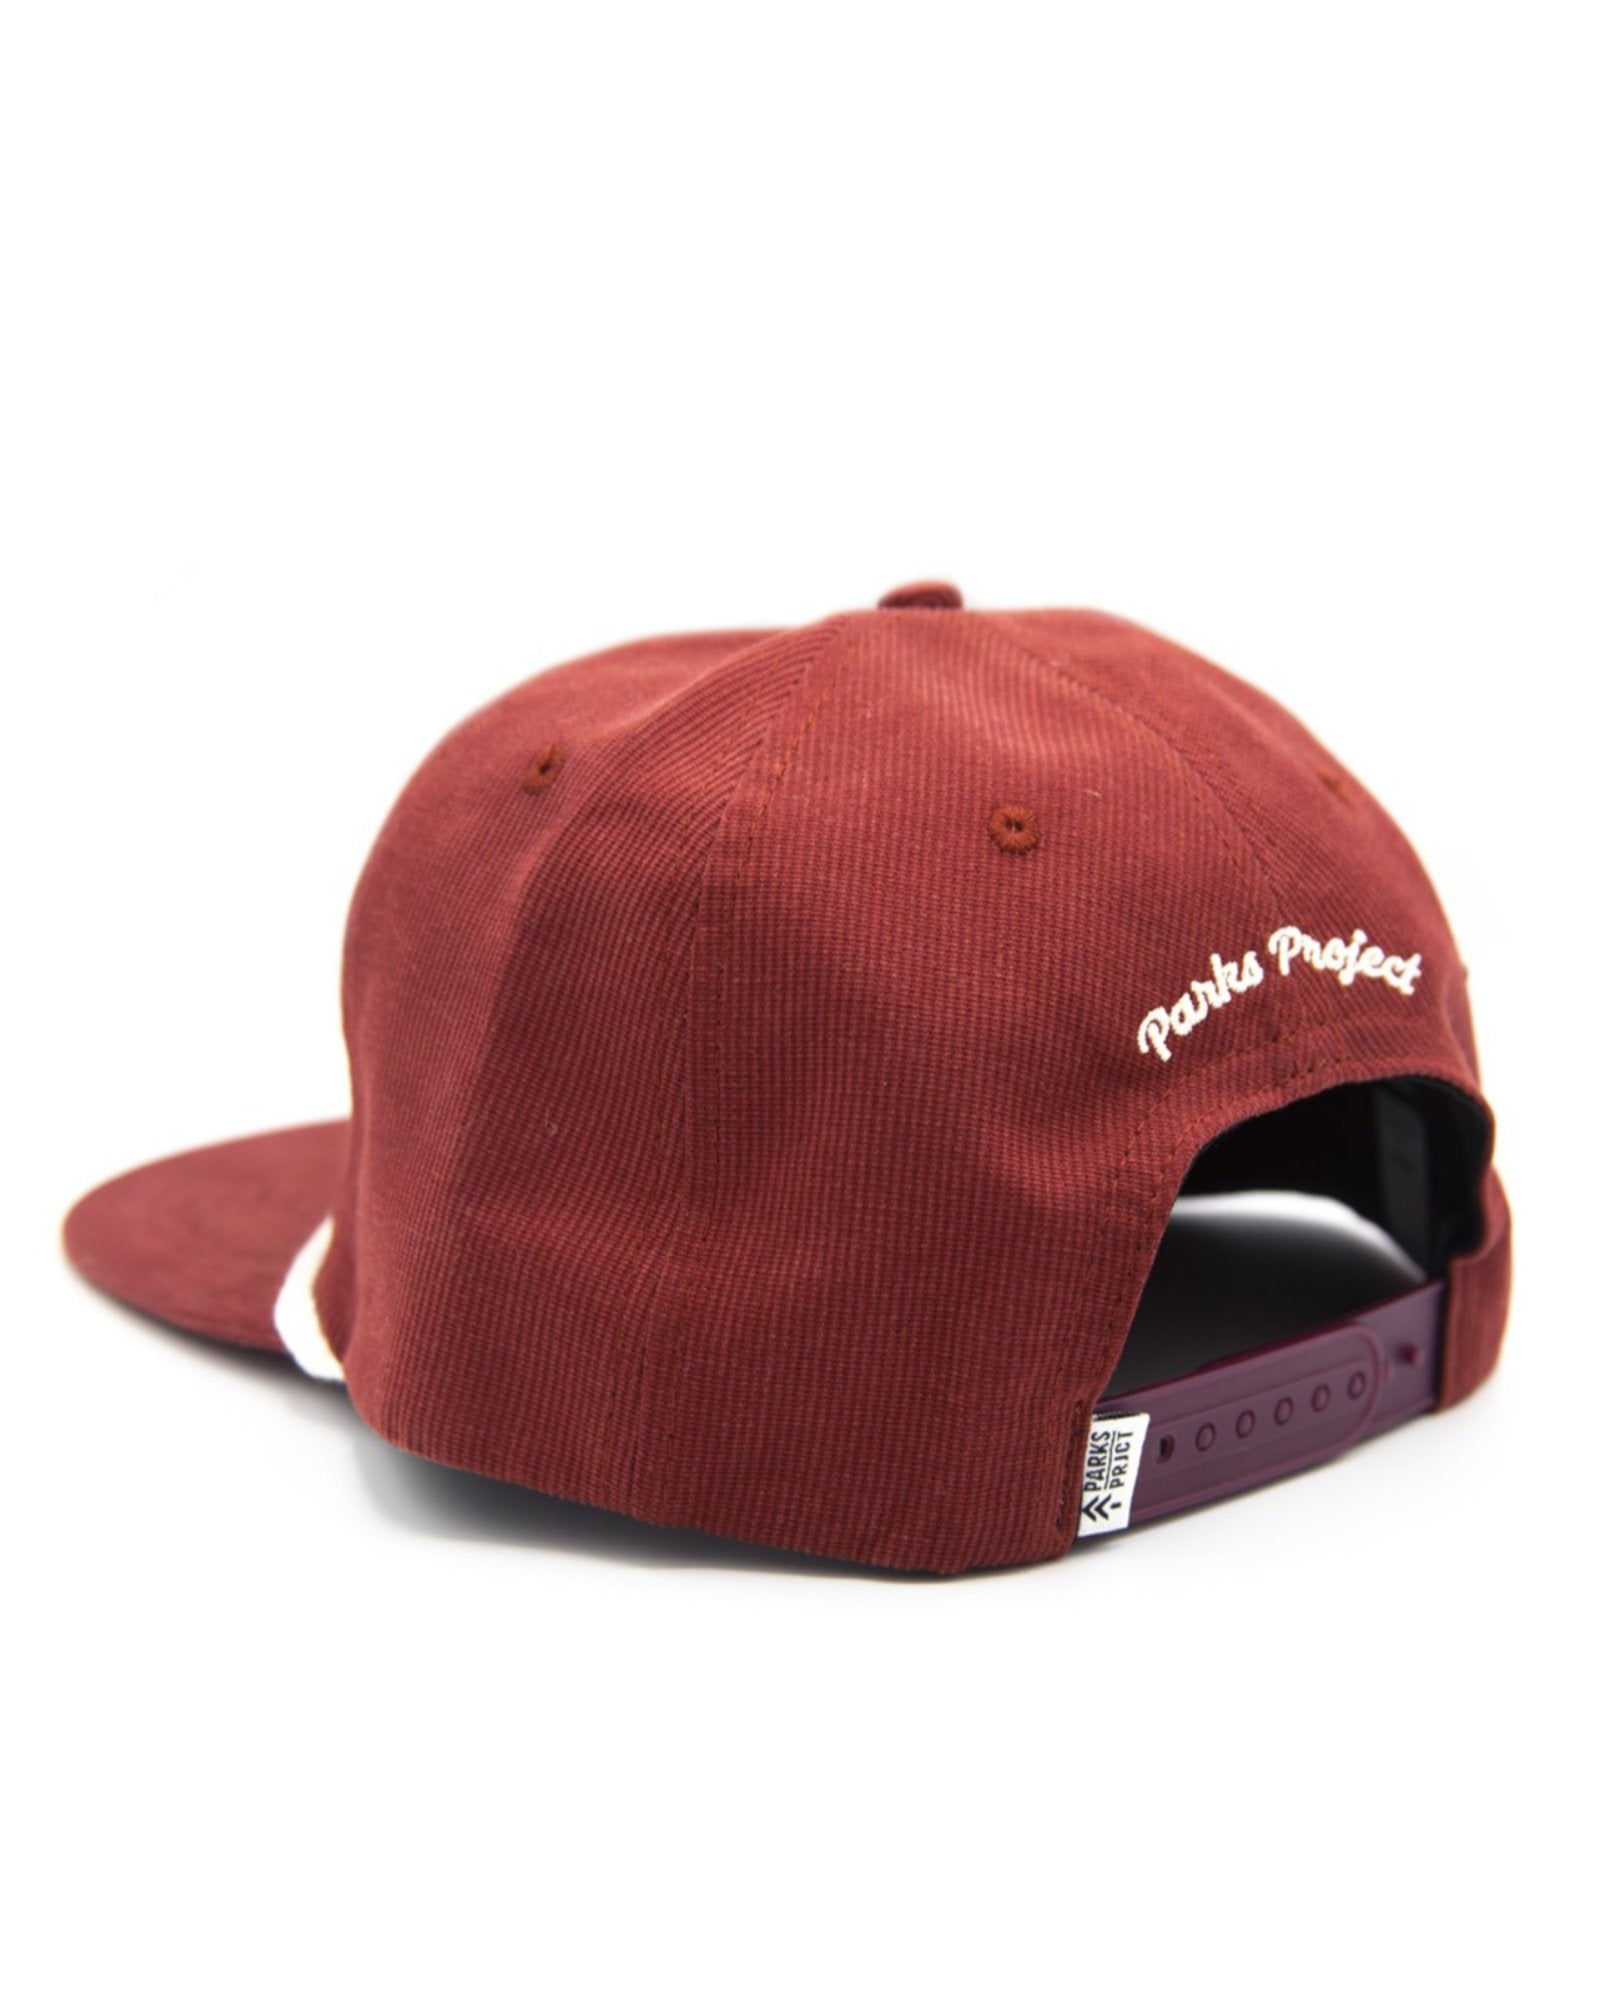 Grand Canyon Throwback Cord Hat